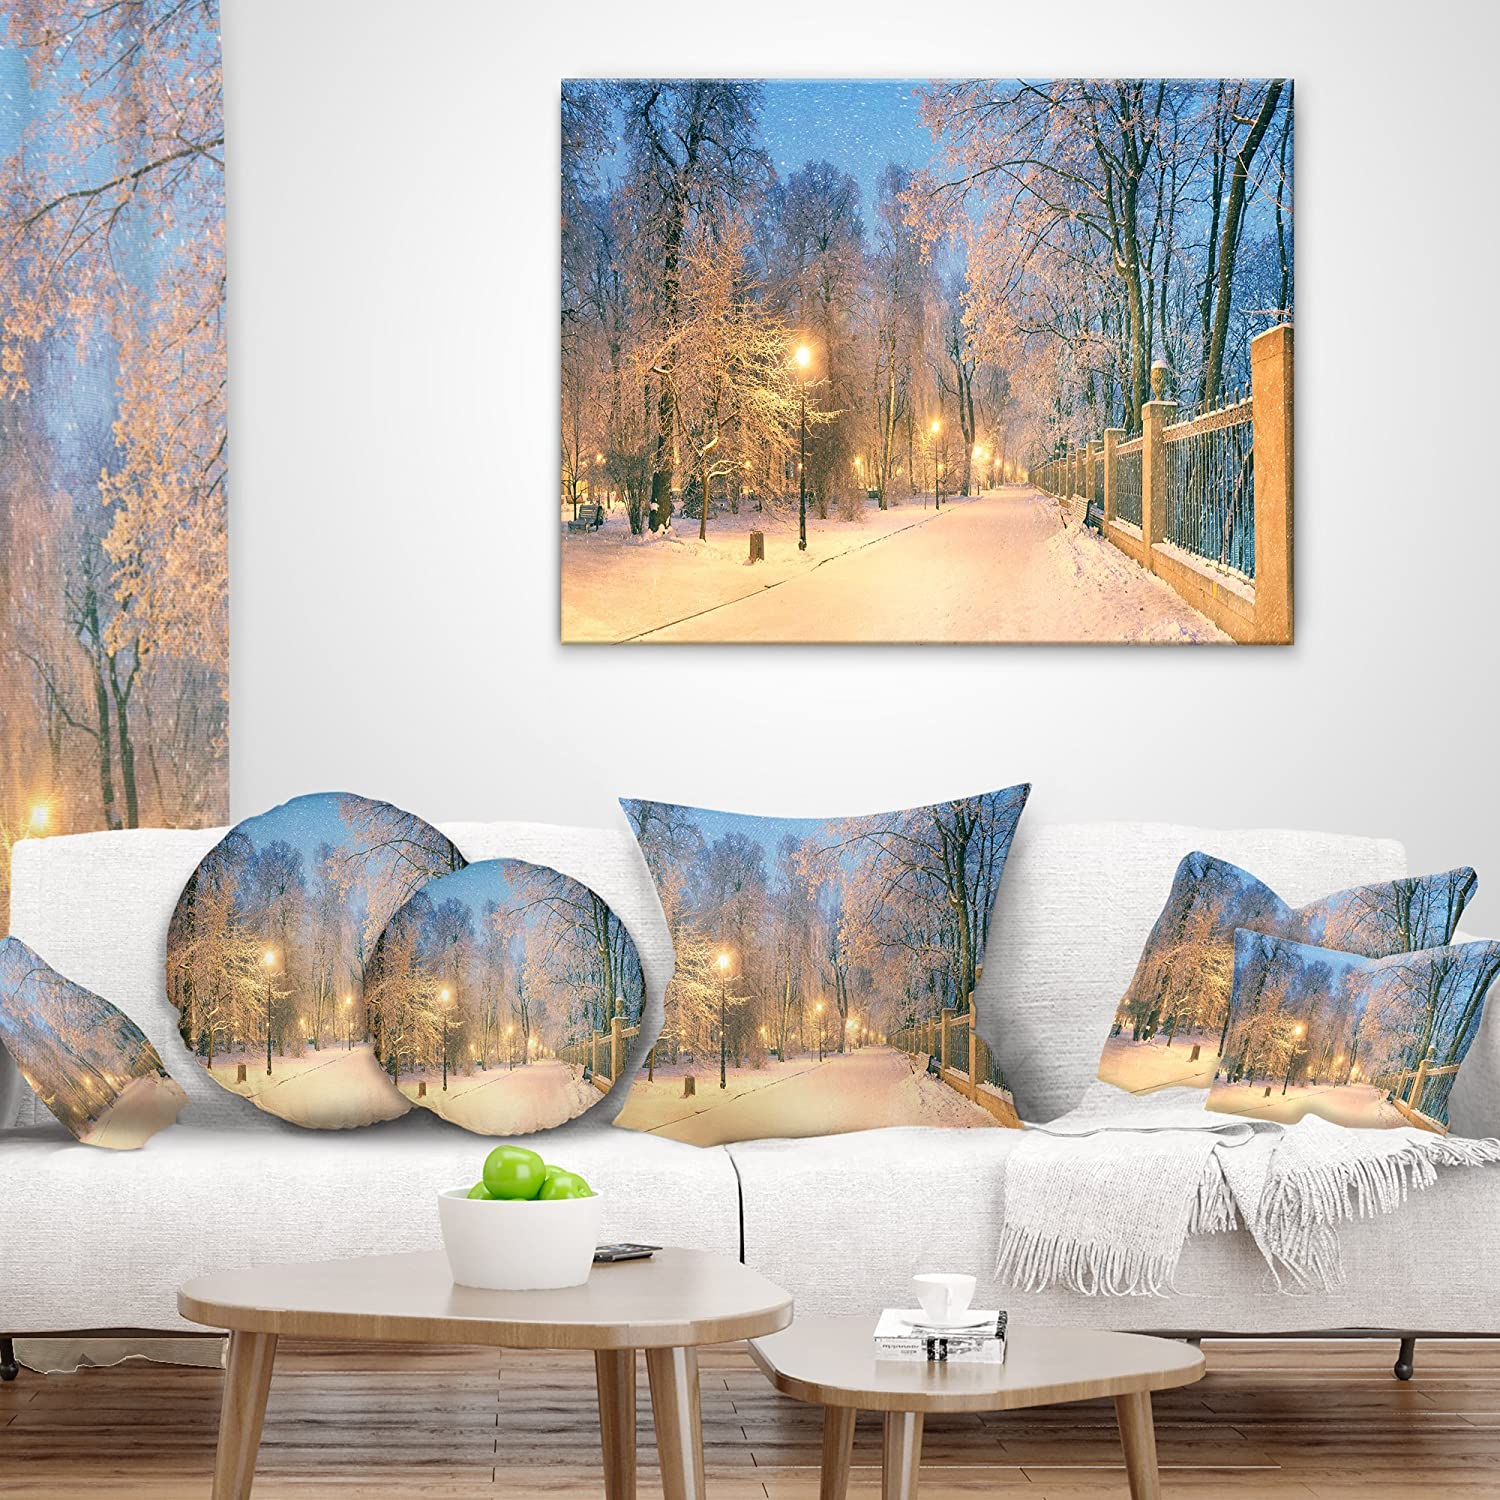 Sofa Throw Pillow 26 in x 26 in Insert Printed On Both Side in Designart CU9146-26-26 Path in Mariinsky Garden Landscape Photo Cushion Cover for Living Room